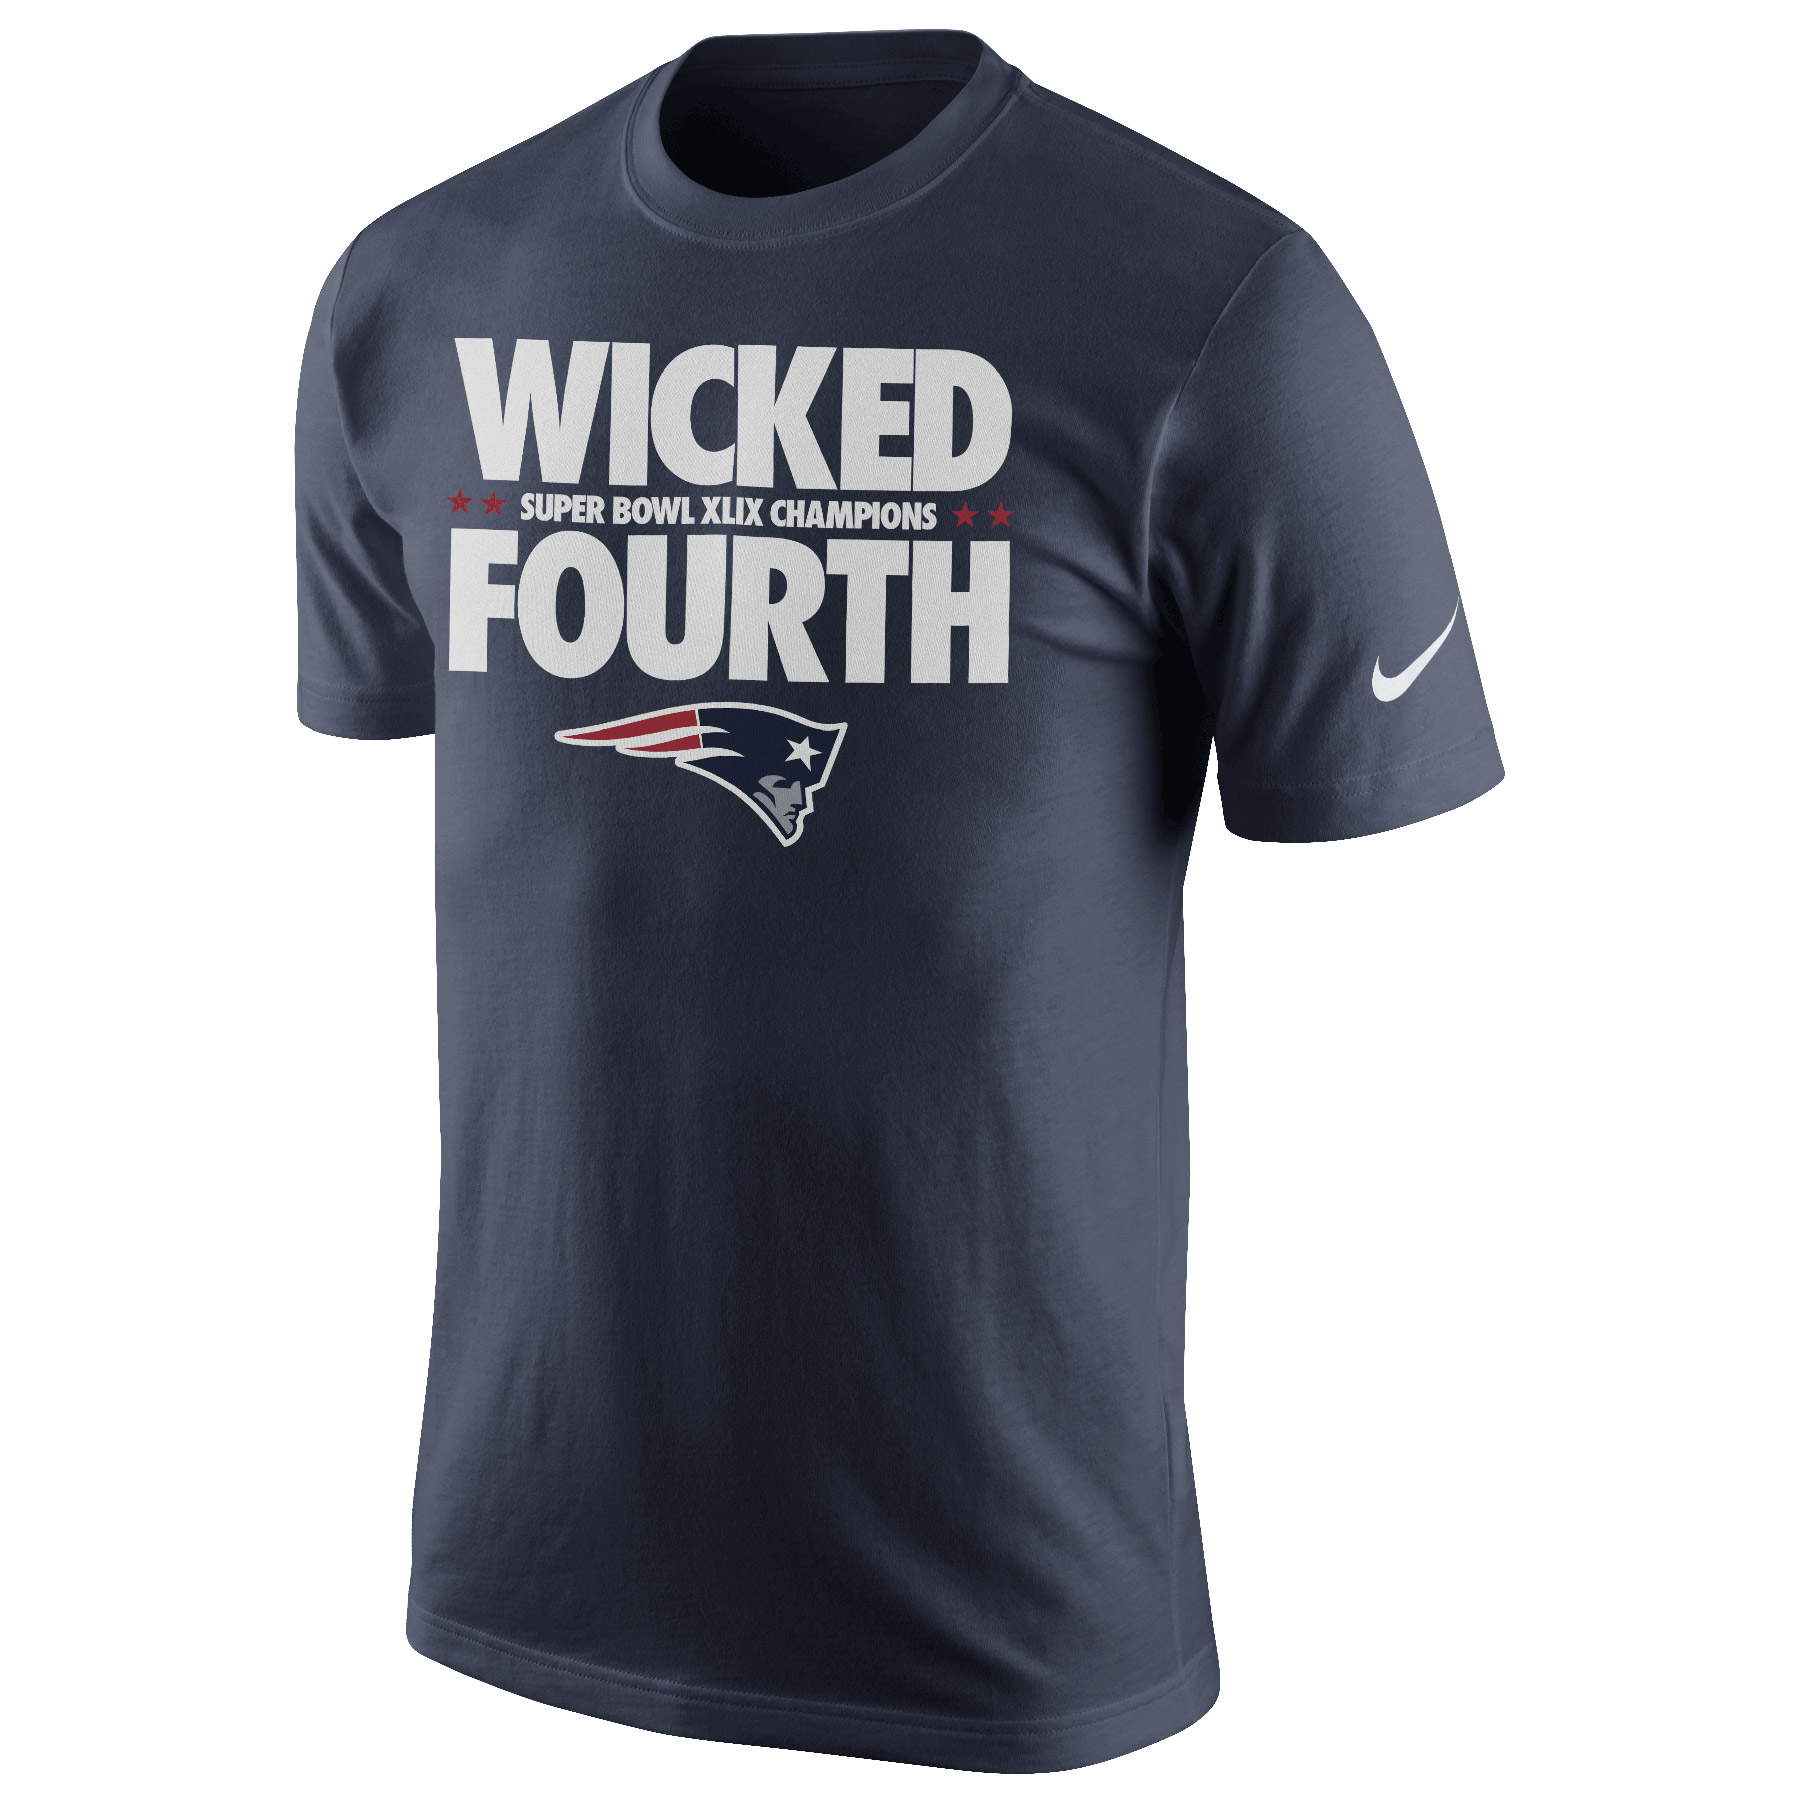 New England Patriots Nike Super Bowl XLIX Champions Wicked Fourth T-Shirt Navy